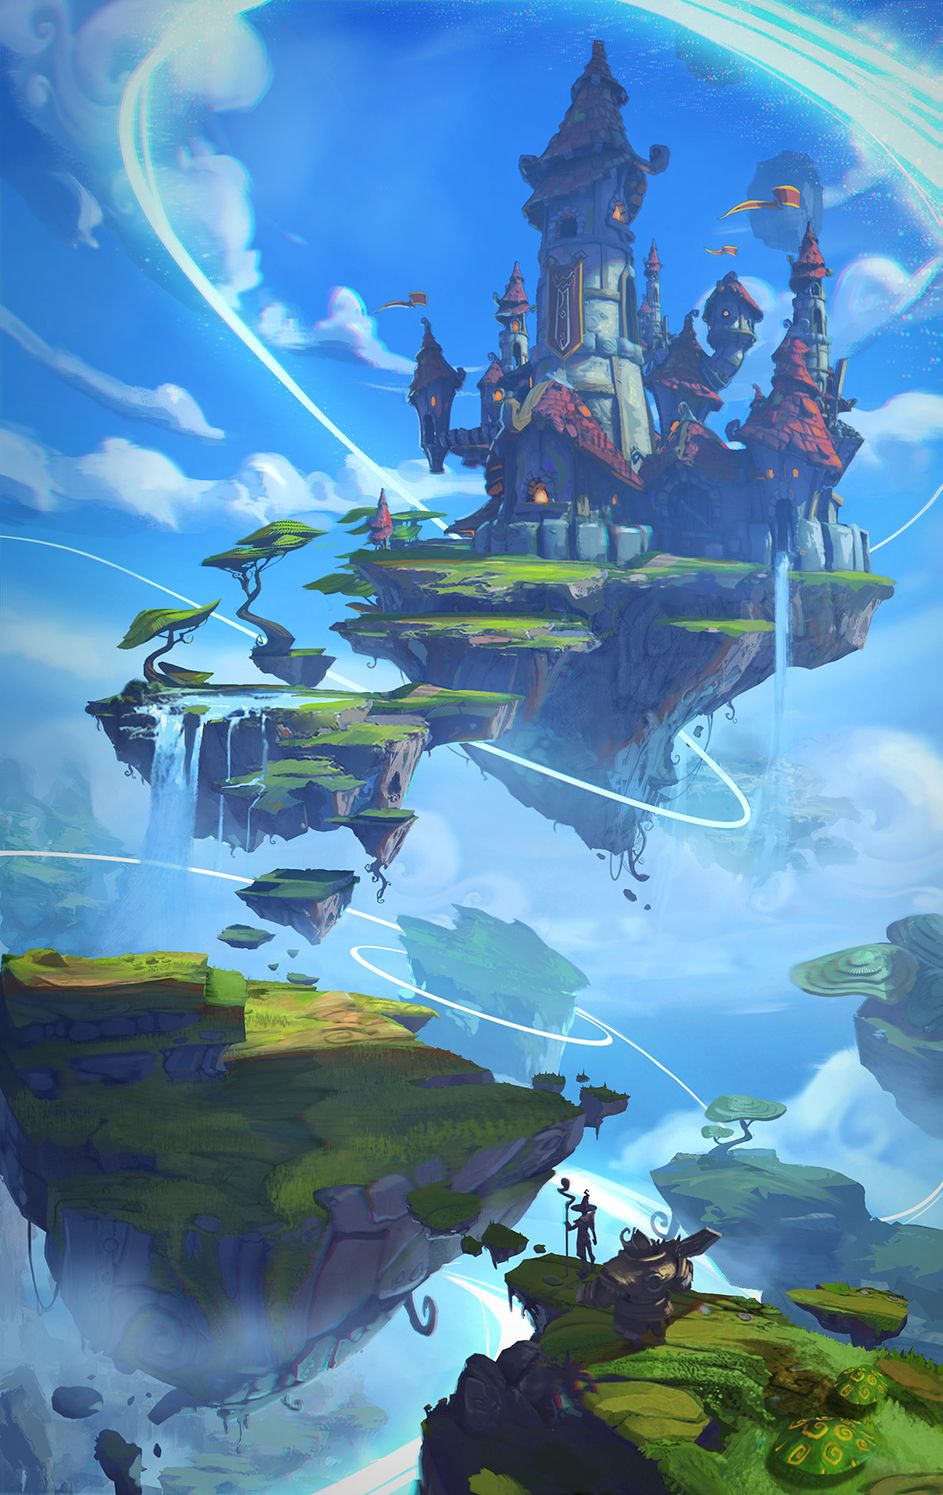 The Best Video Game Art Of 2014 Is A Treat For The Eyeballs